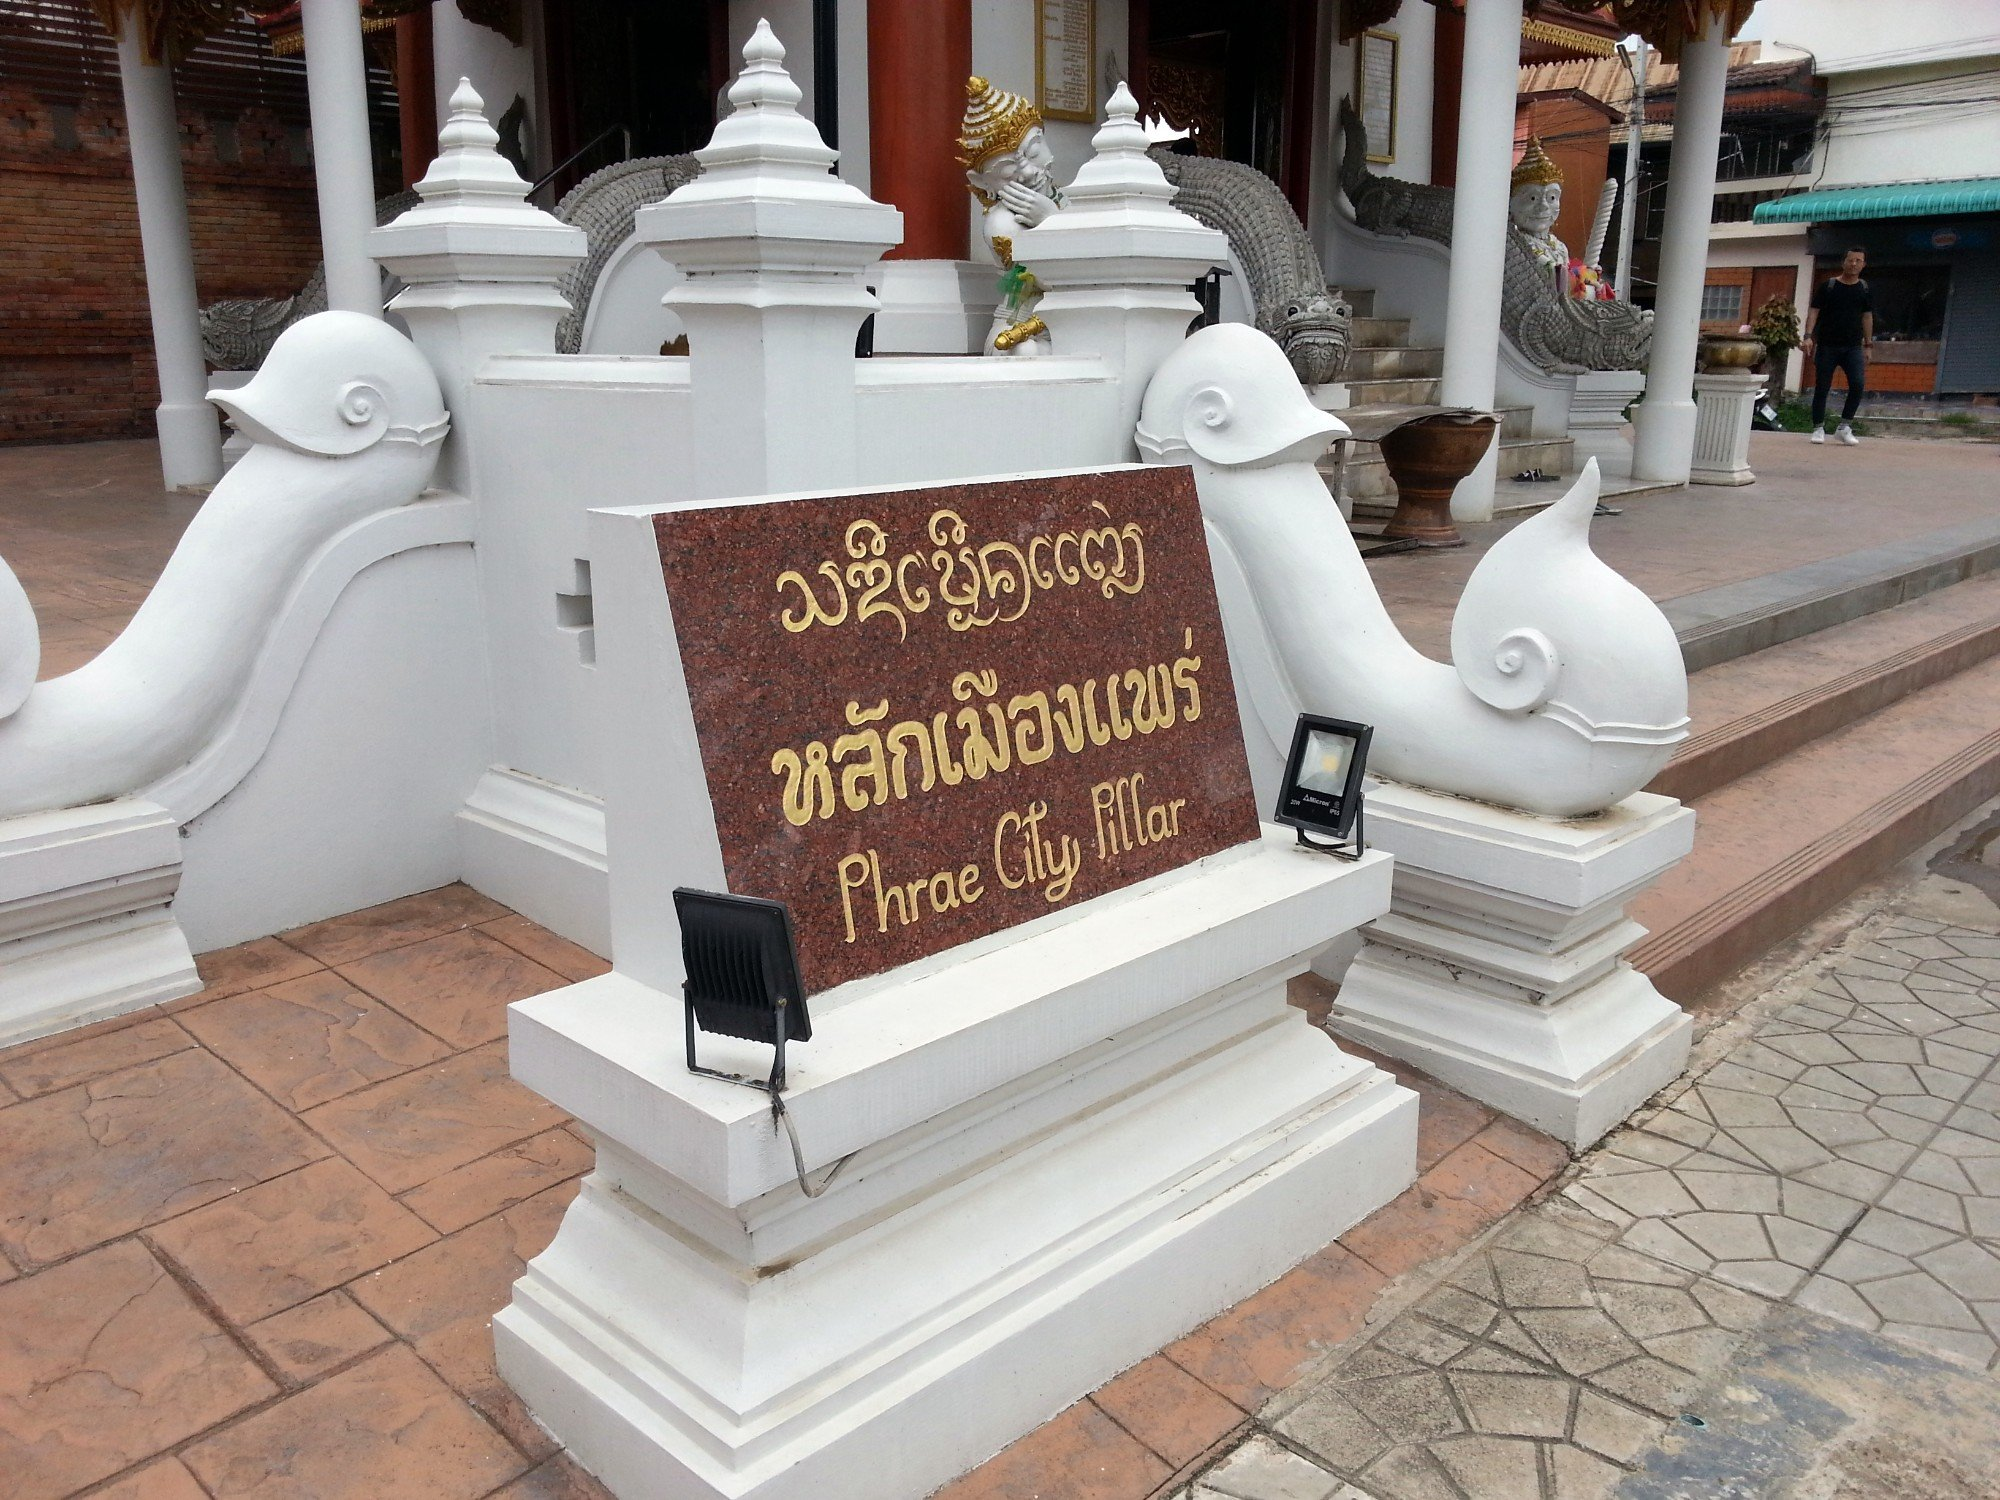 Phrae City Pillar Shrine